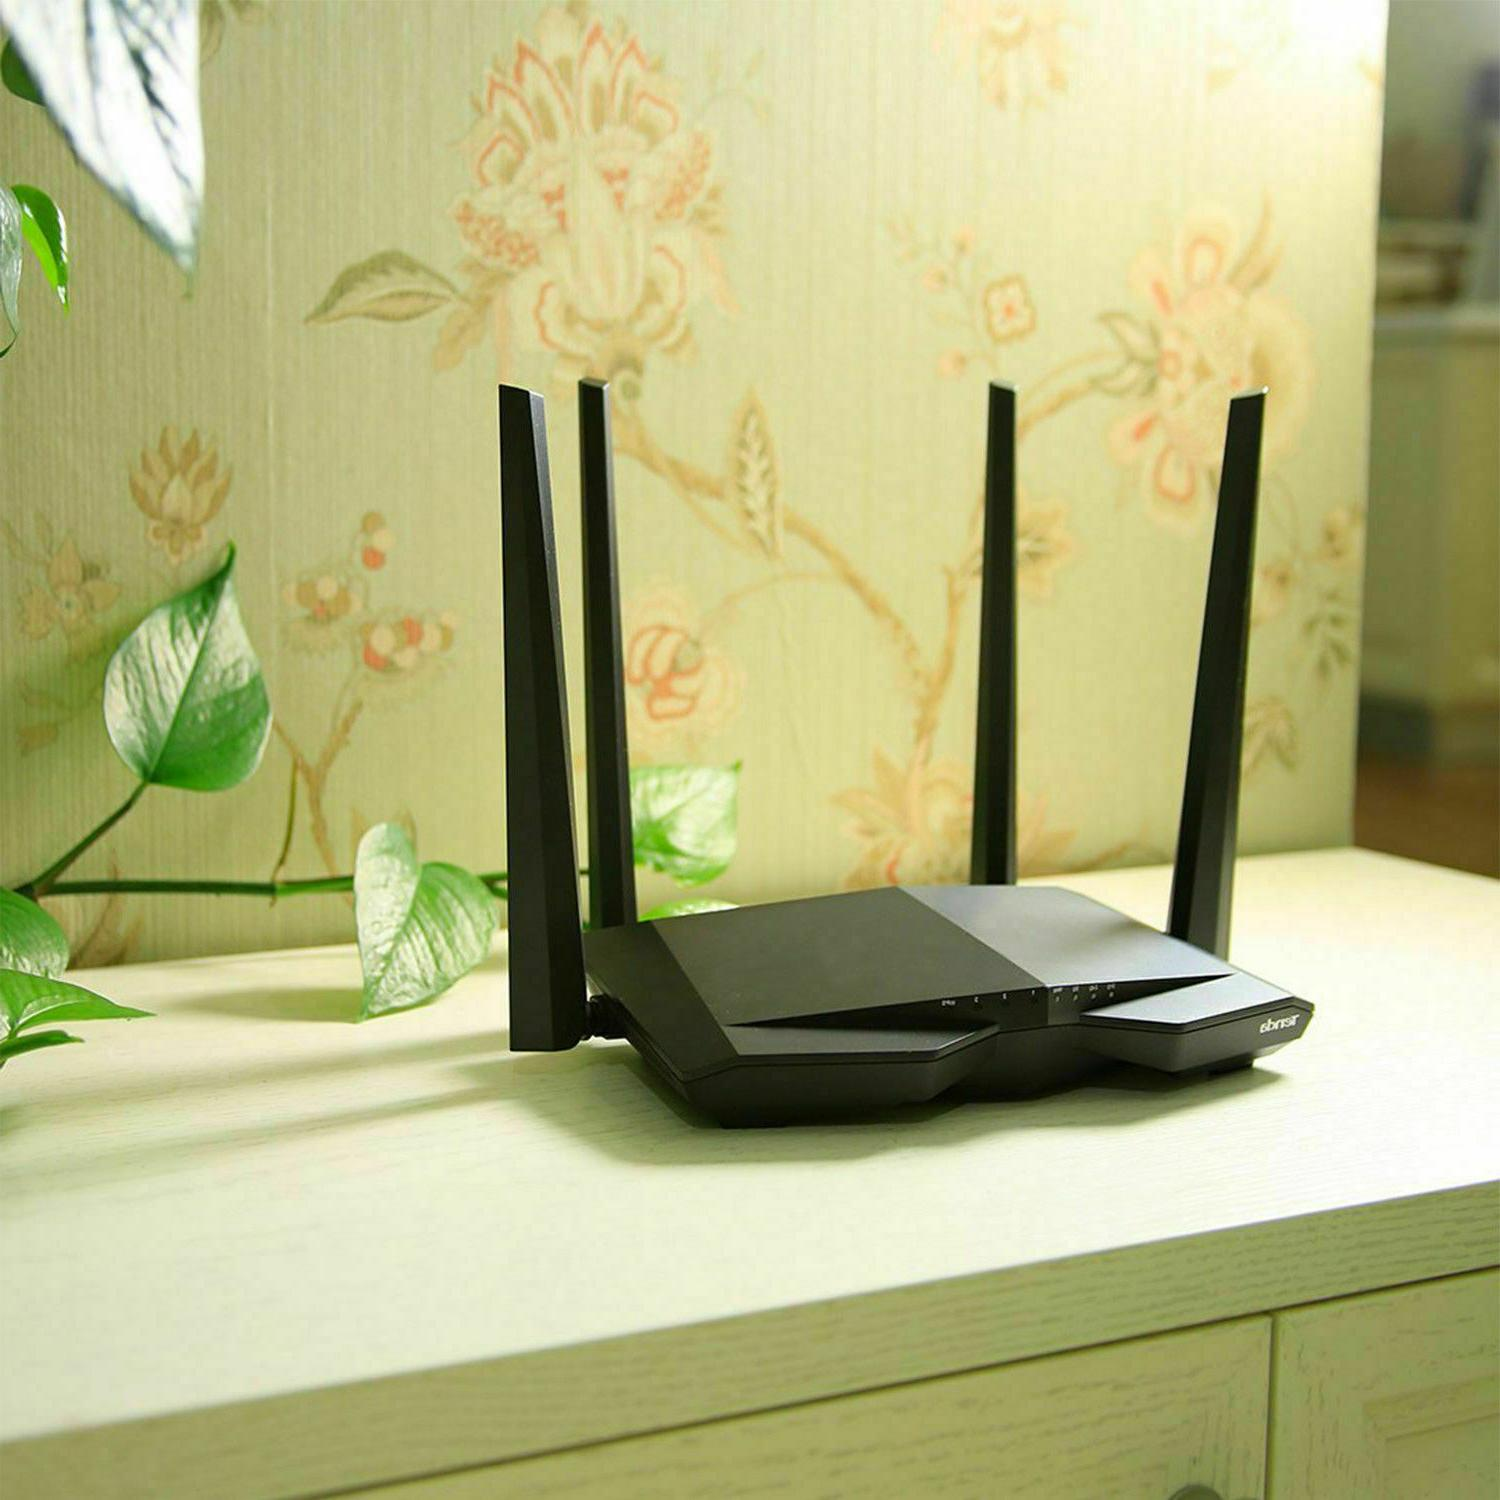 AC1200 Fast Ethernet Home Router WiFi Games Network Wireless